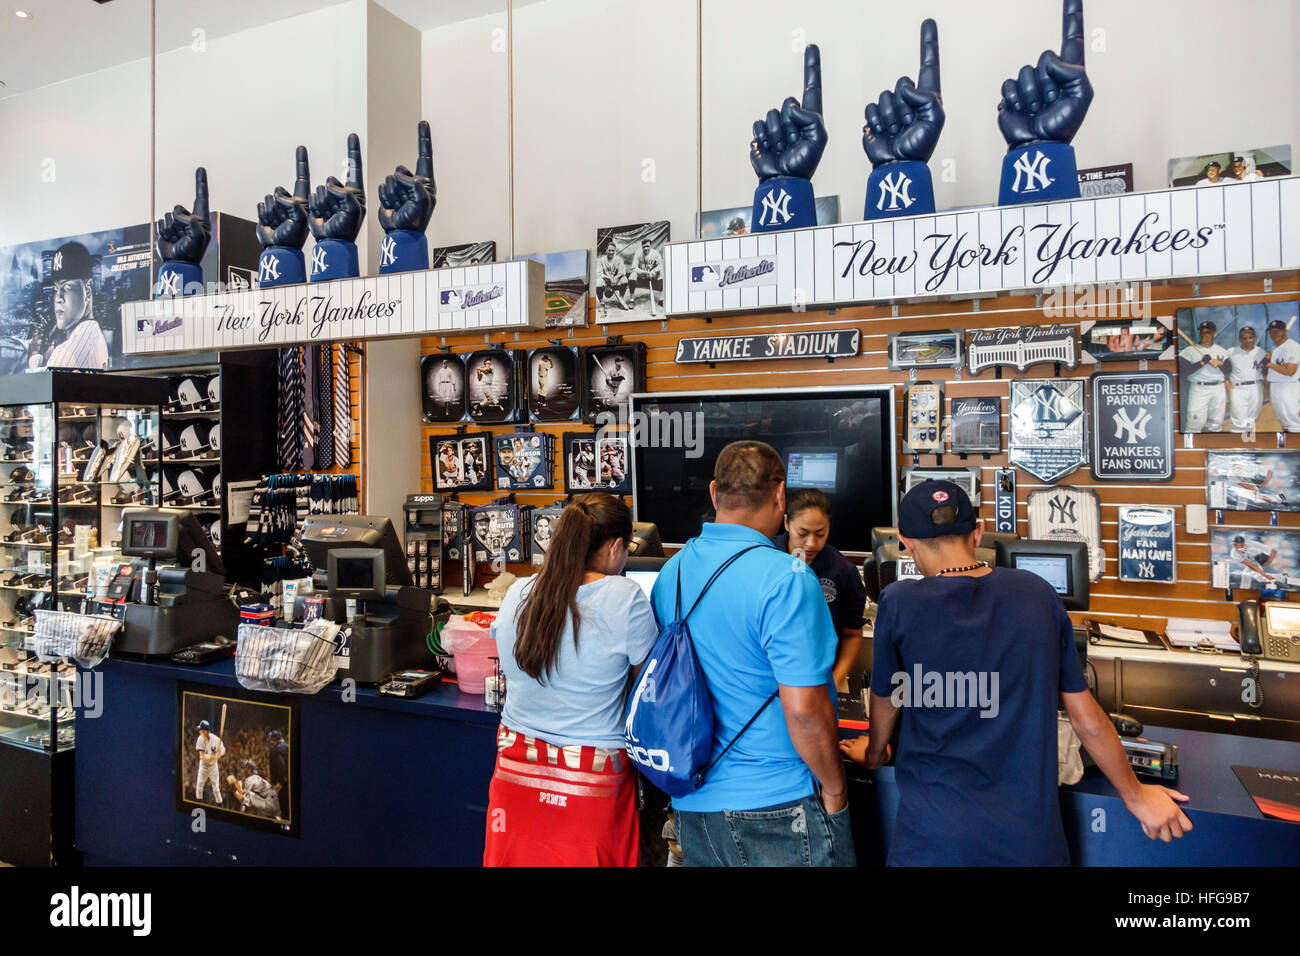 e7be1202604 New York New York City NYC Bronx NY Yankees Yankee Stadium ballpark shopping  team store gift shop sports team merchandise baseball Asian man woman cas